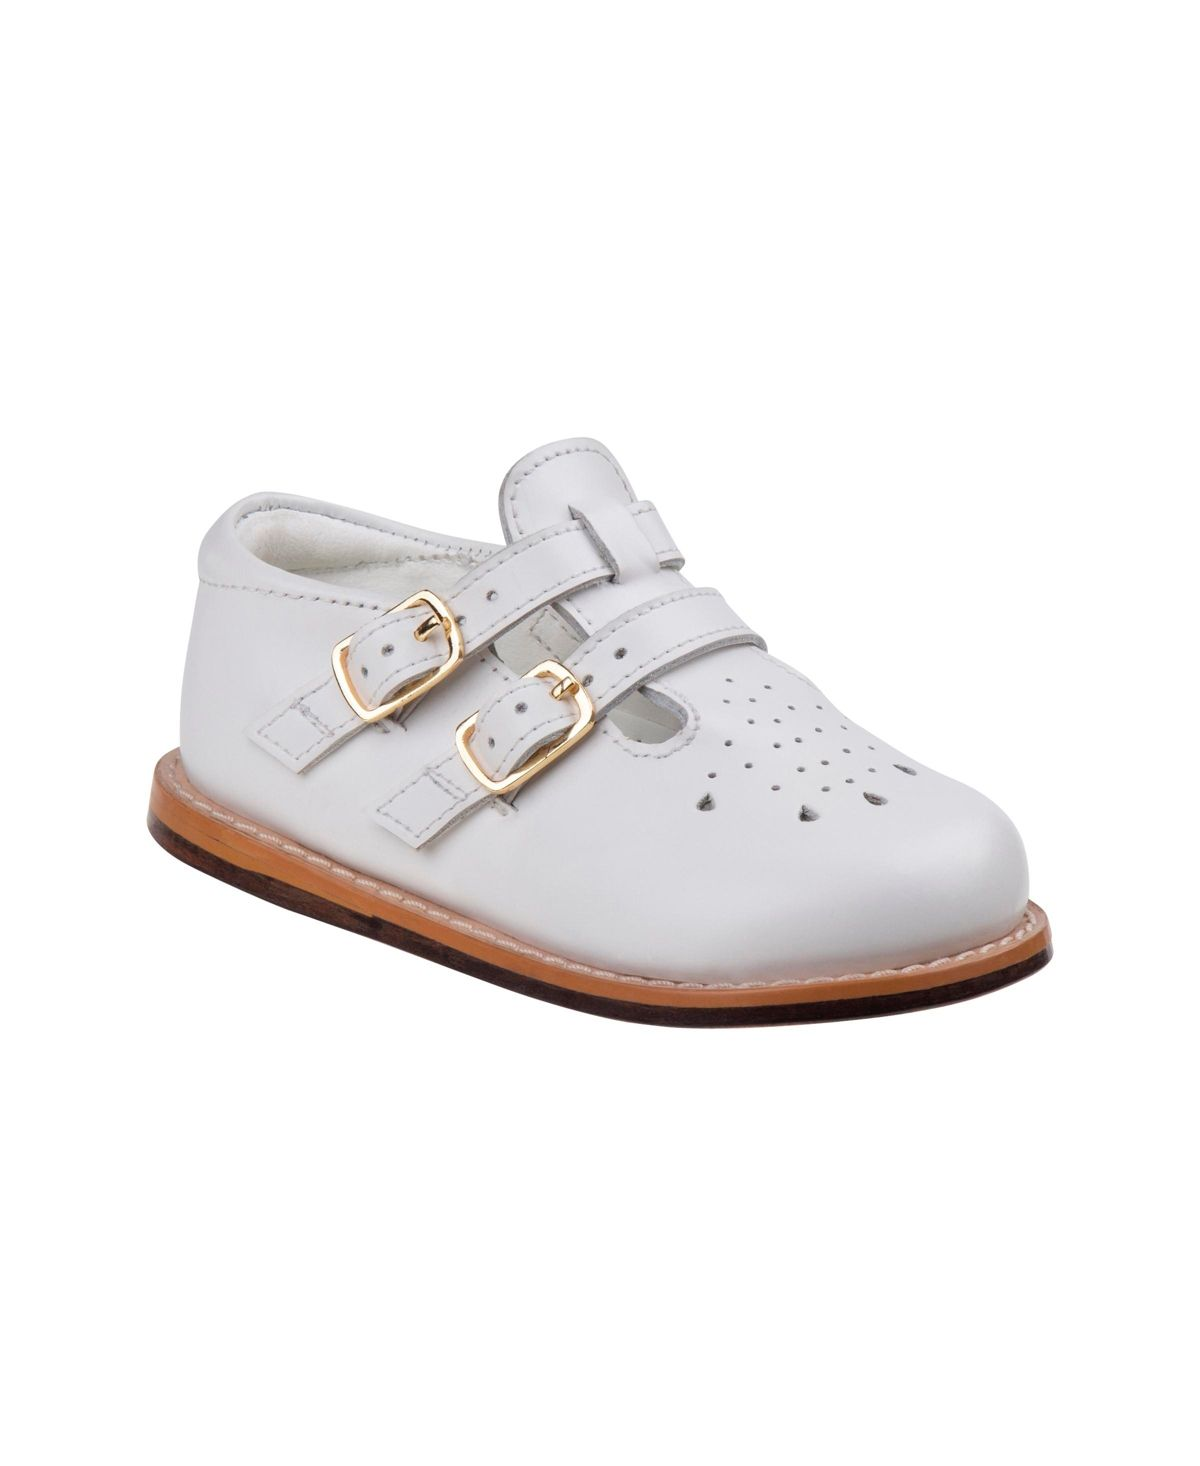 Walker shoes, Girls shoes, Toddler shoes